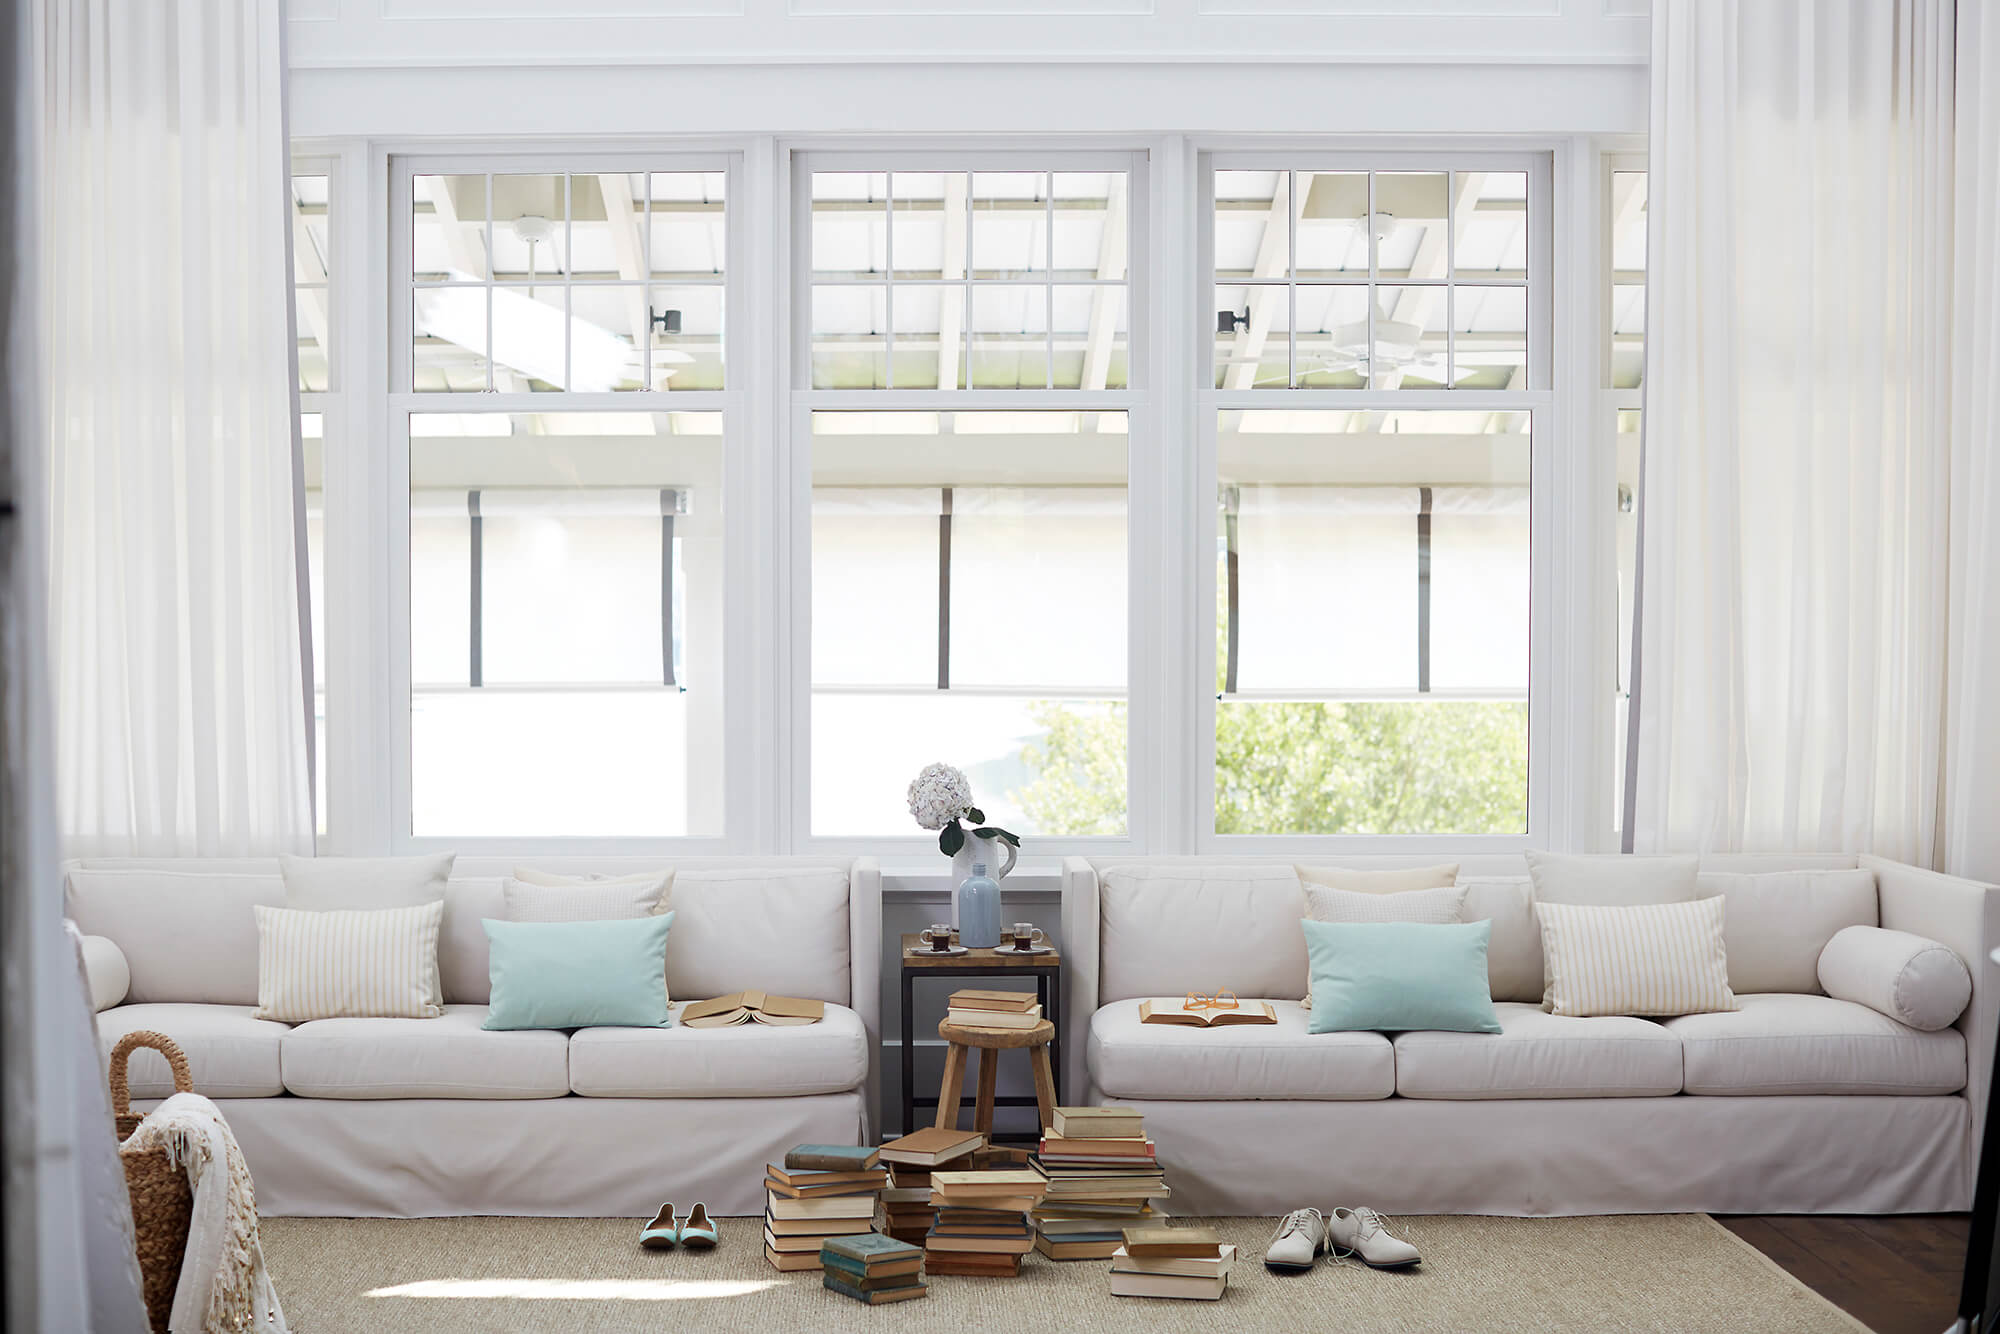 A white sofa upholstered in Sunbrella fabrics is decorated with neutral textured pillows and teal pillows